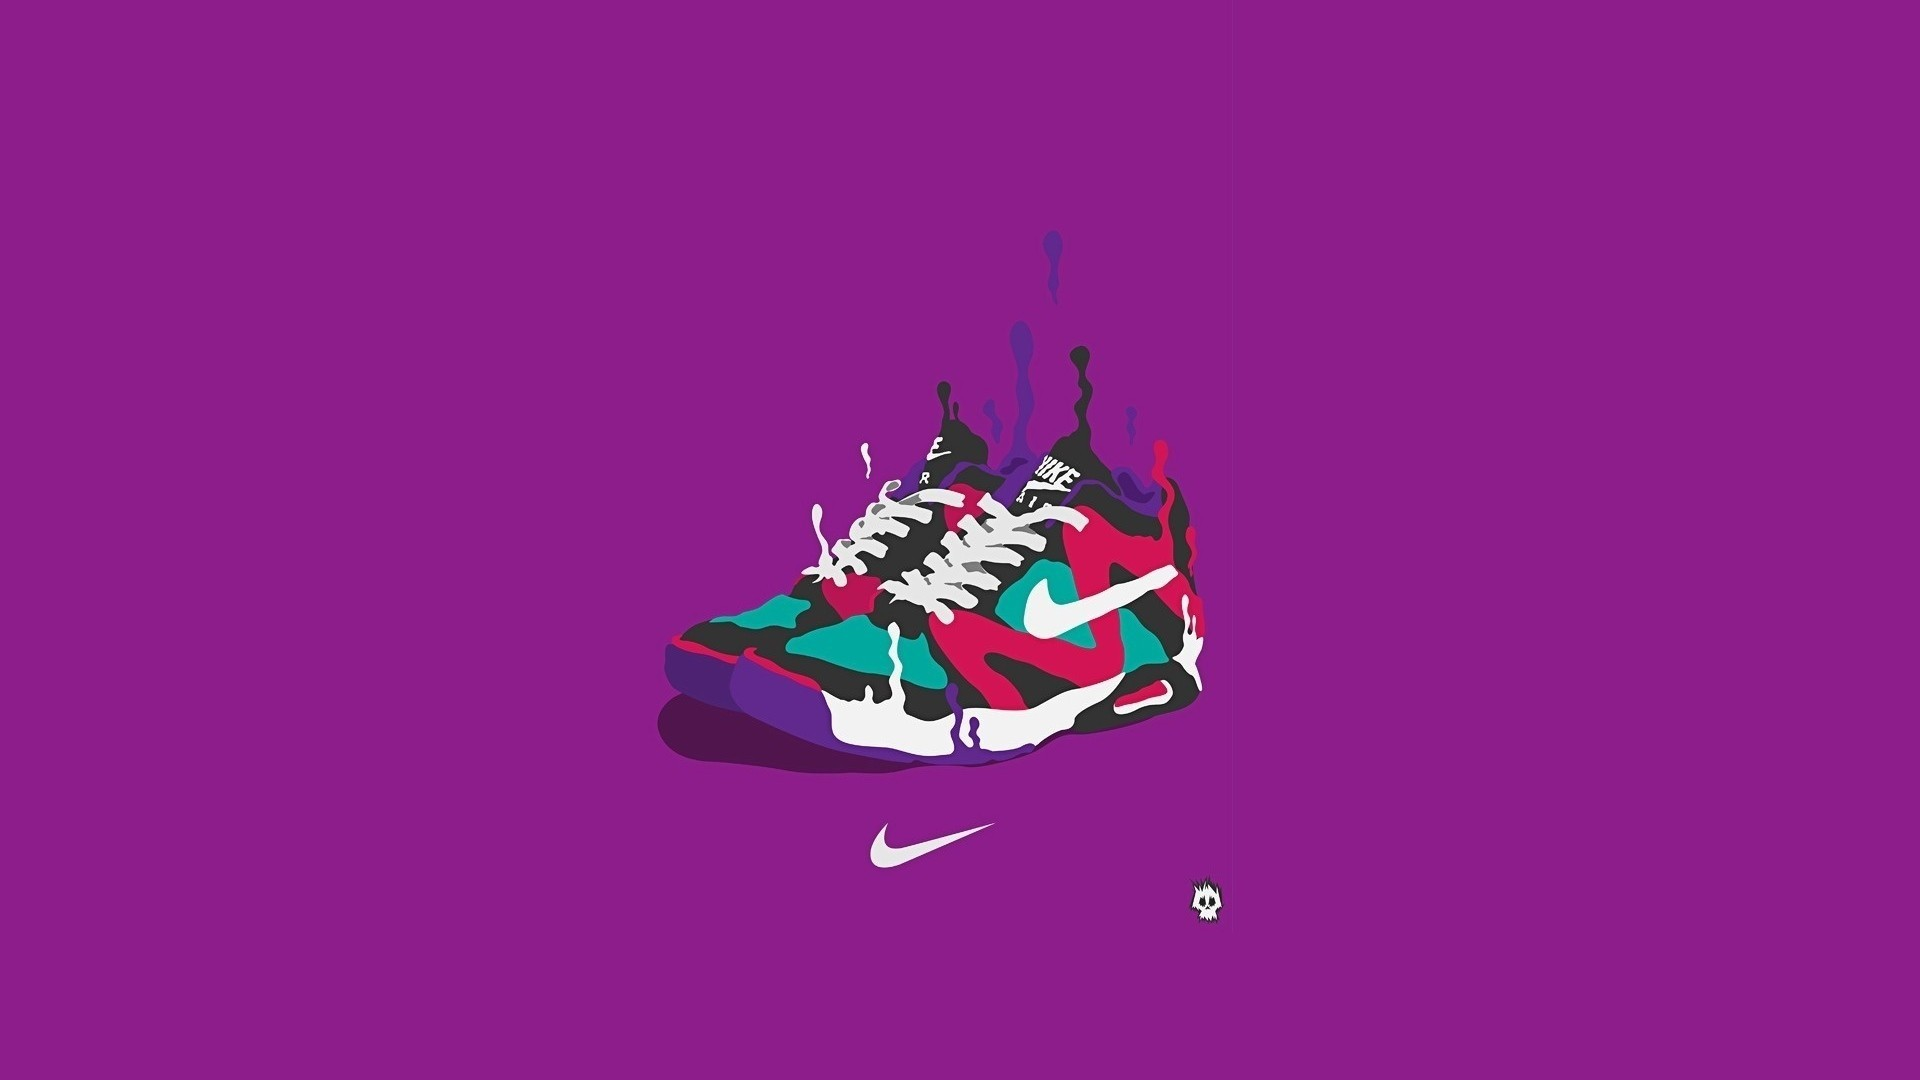 Res: 1920x1080,  ... nike-wallpapers-products-sports-logo-symbol